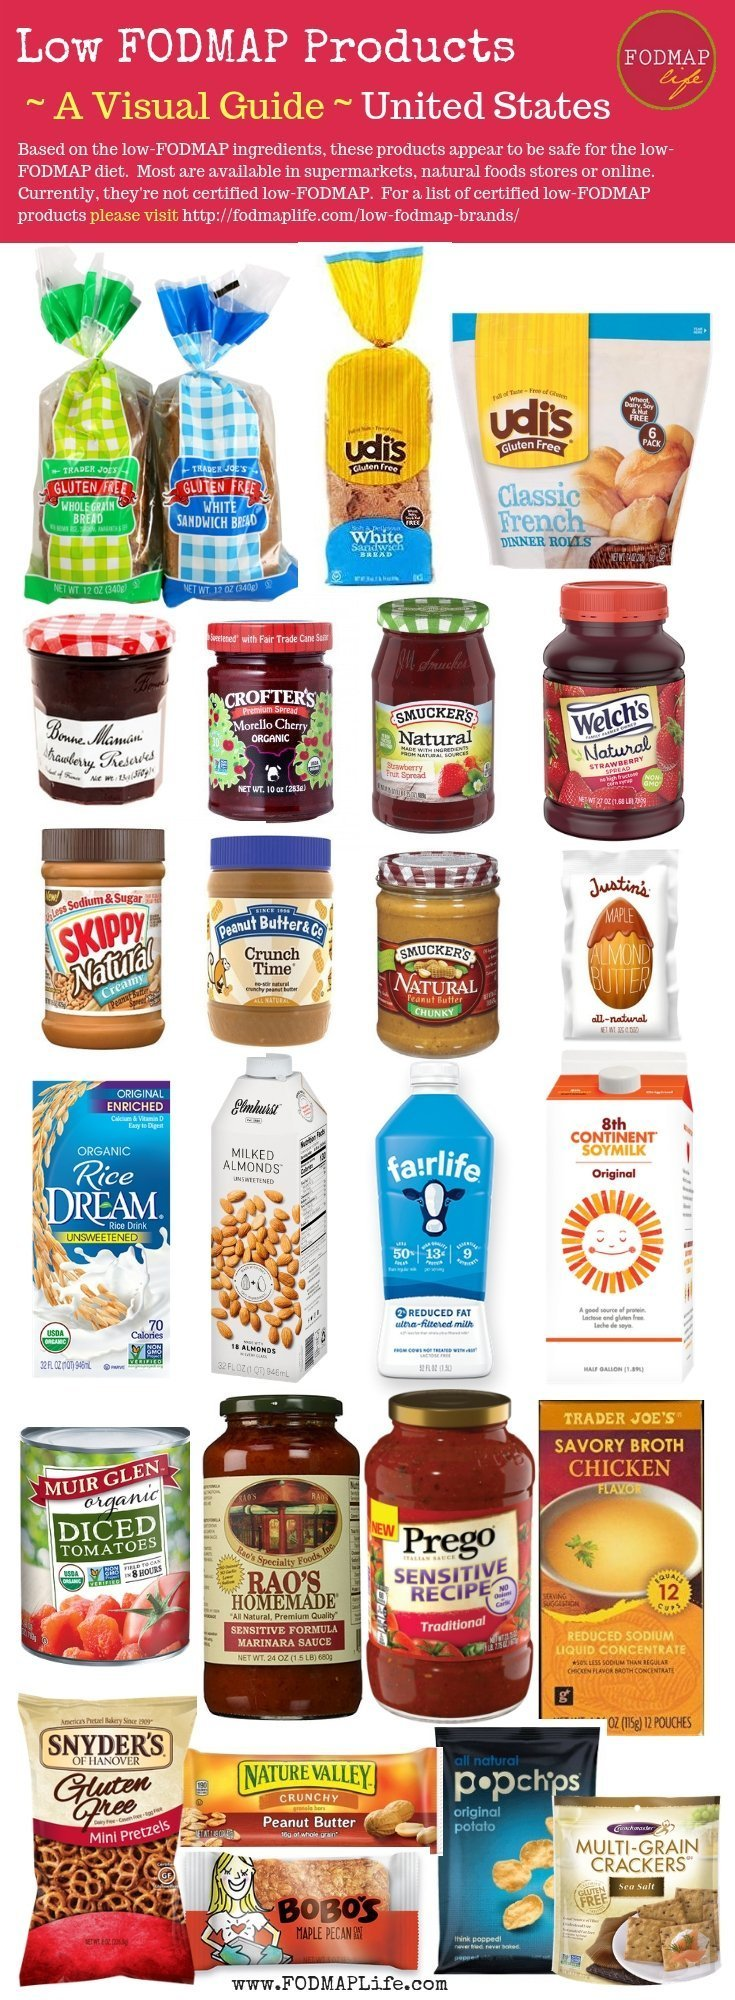 A Low-FODMAP Products Guide for the United States